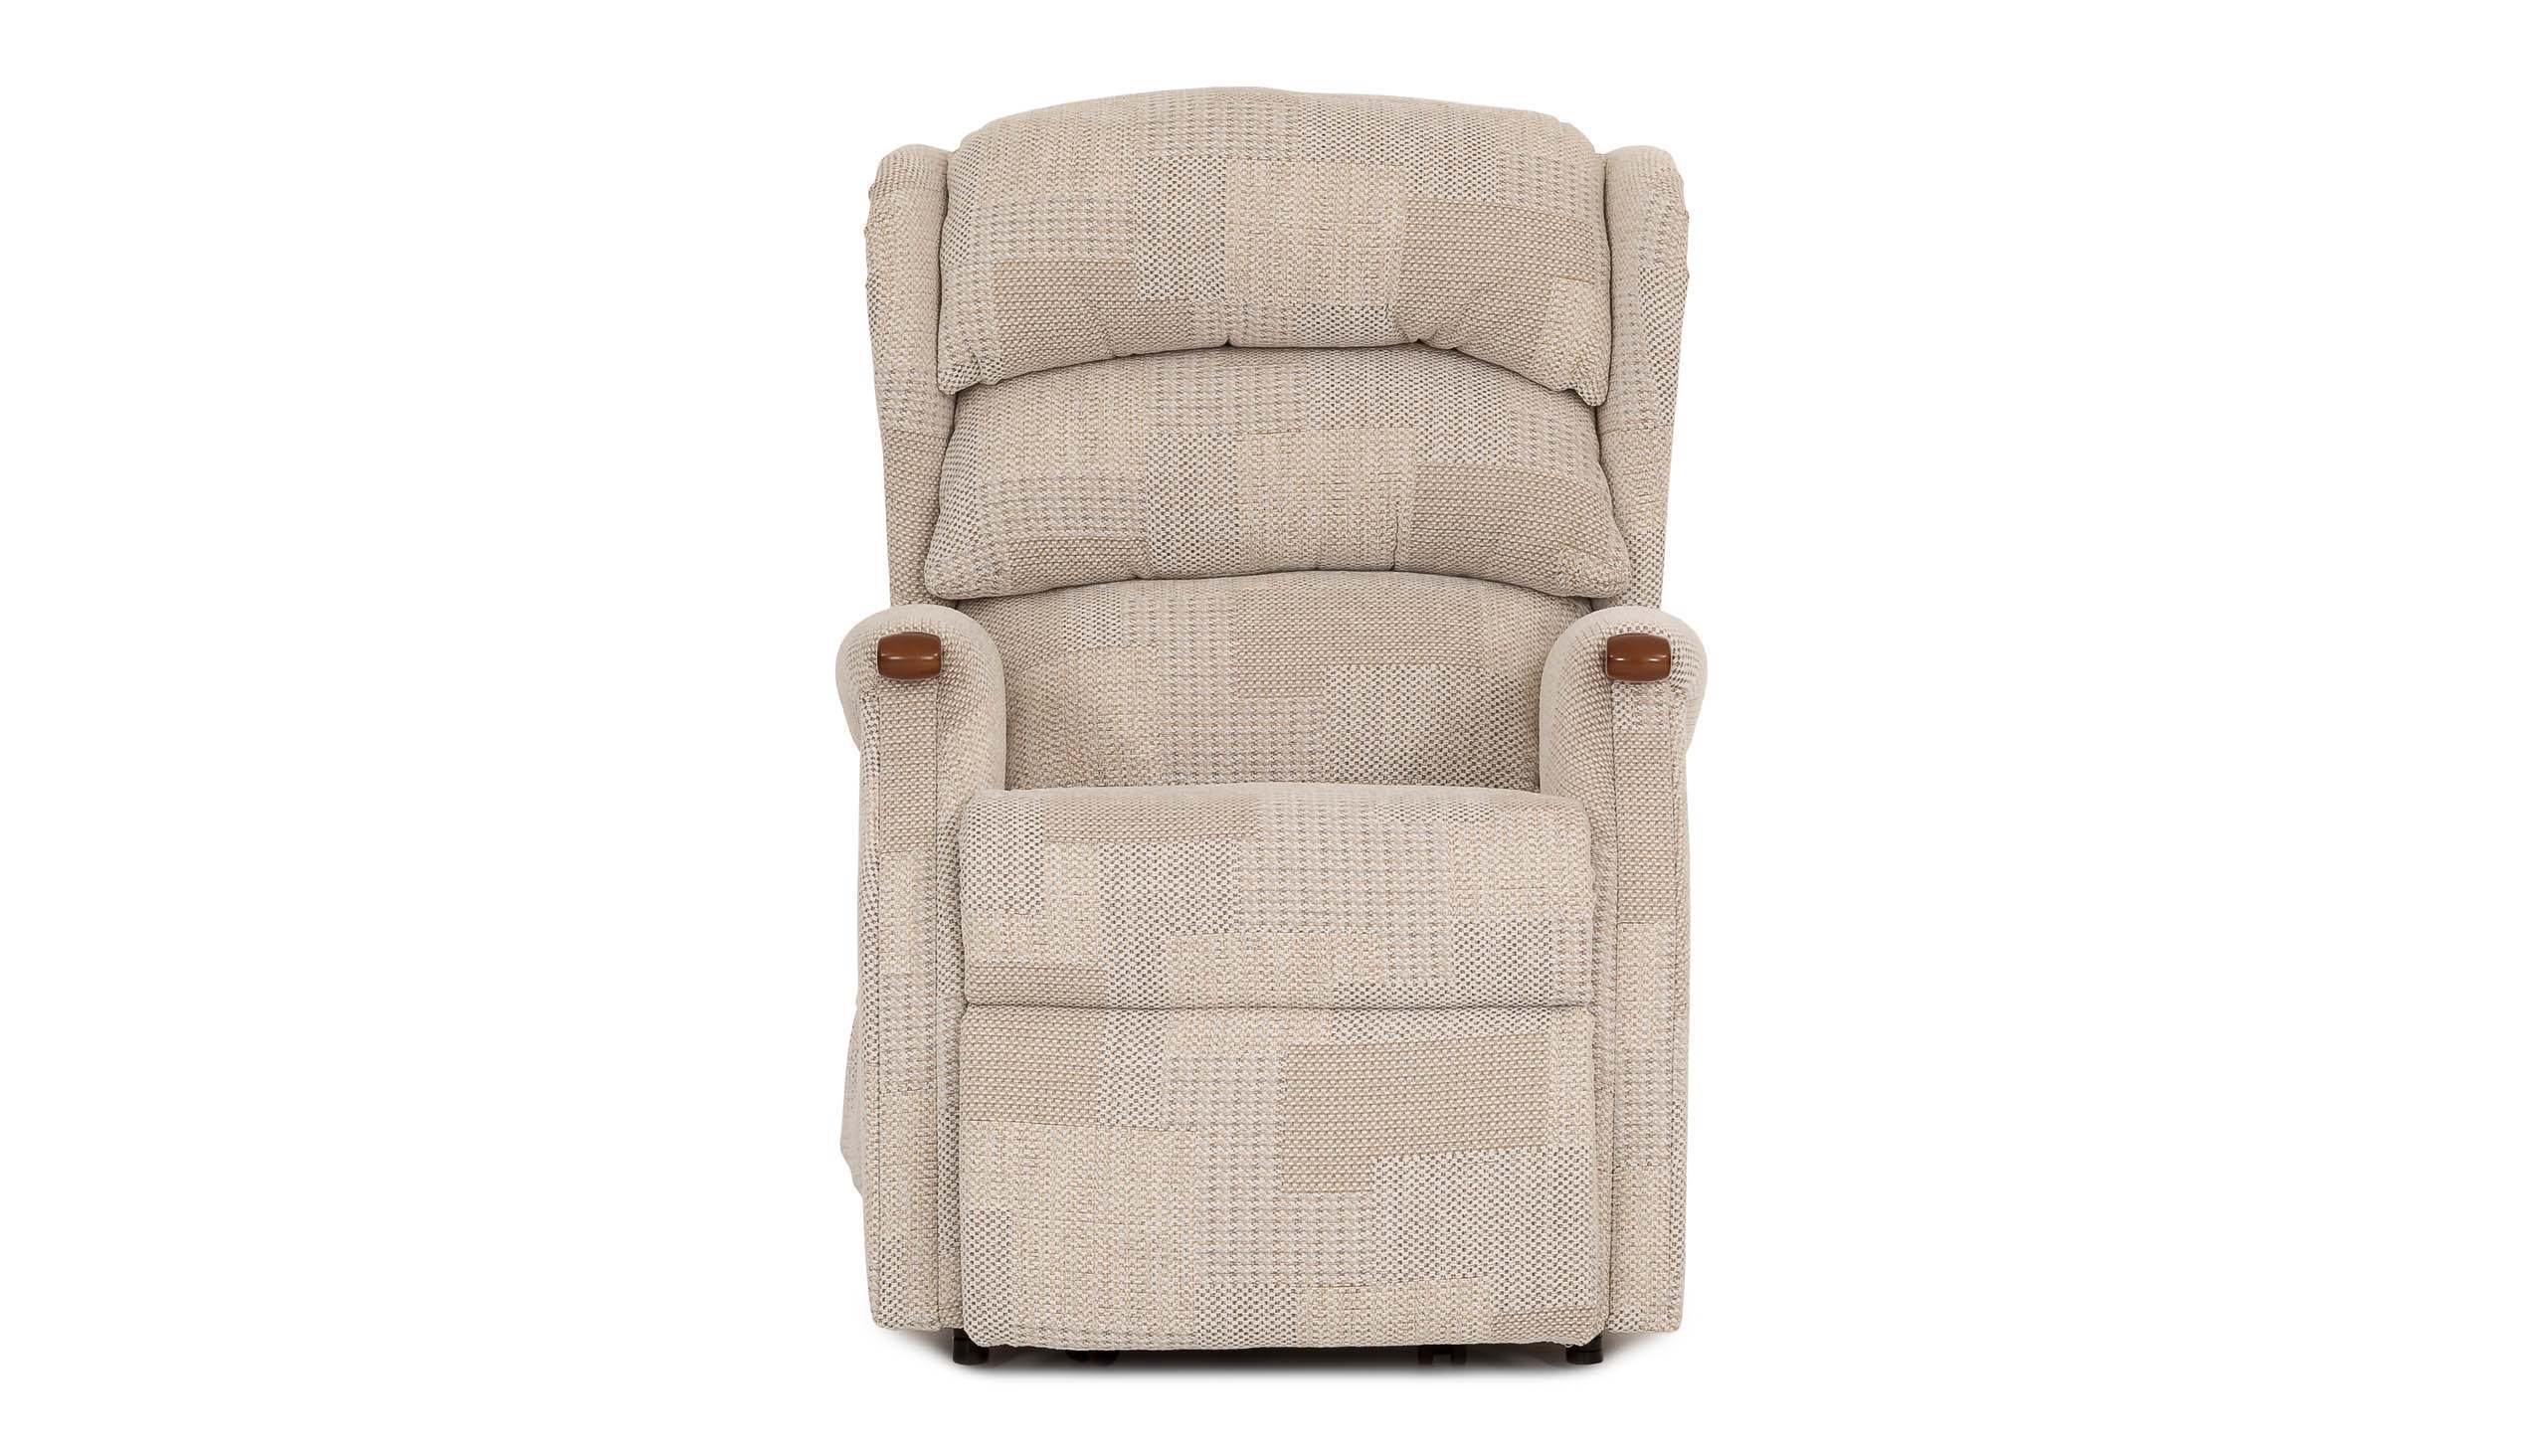 Celebrity Westbury power Recliner Chair with buttons - AHF Furniture & Carpets